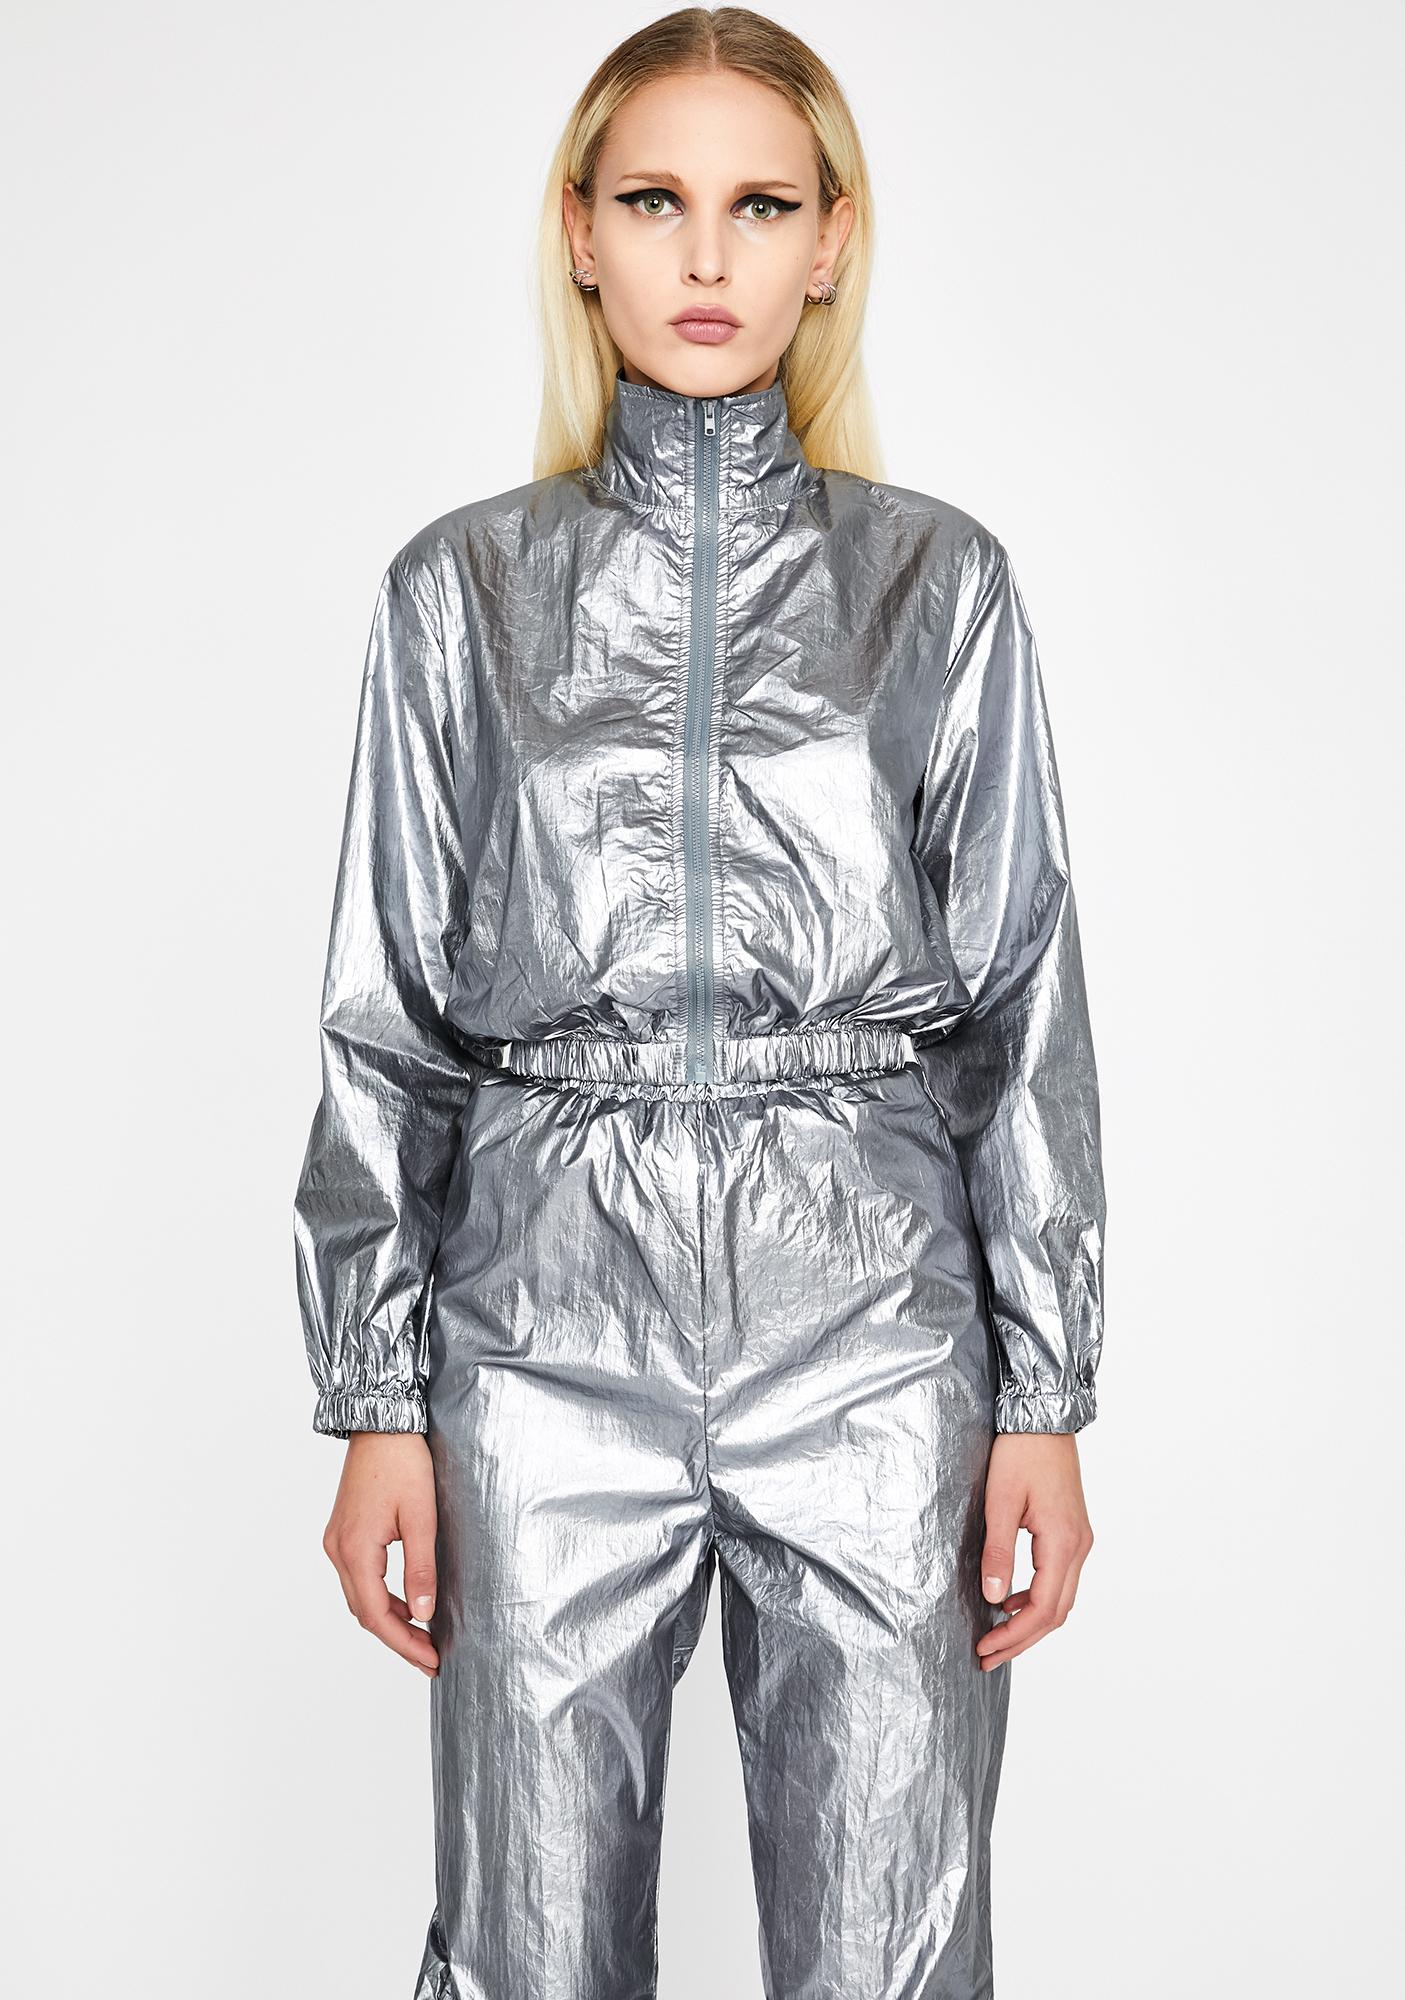 Chrome Cyber Sass Metallic Set